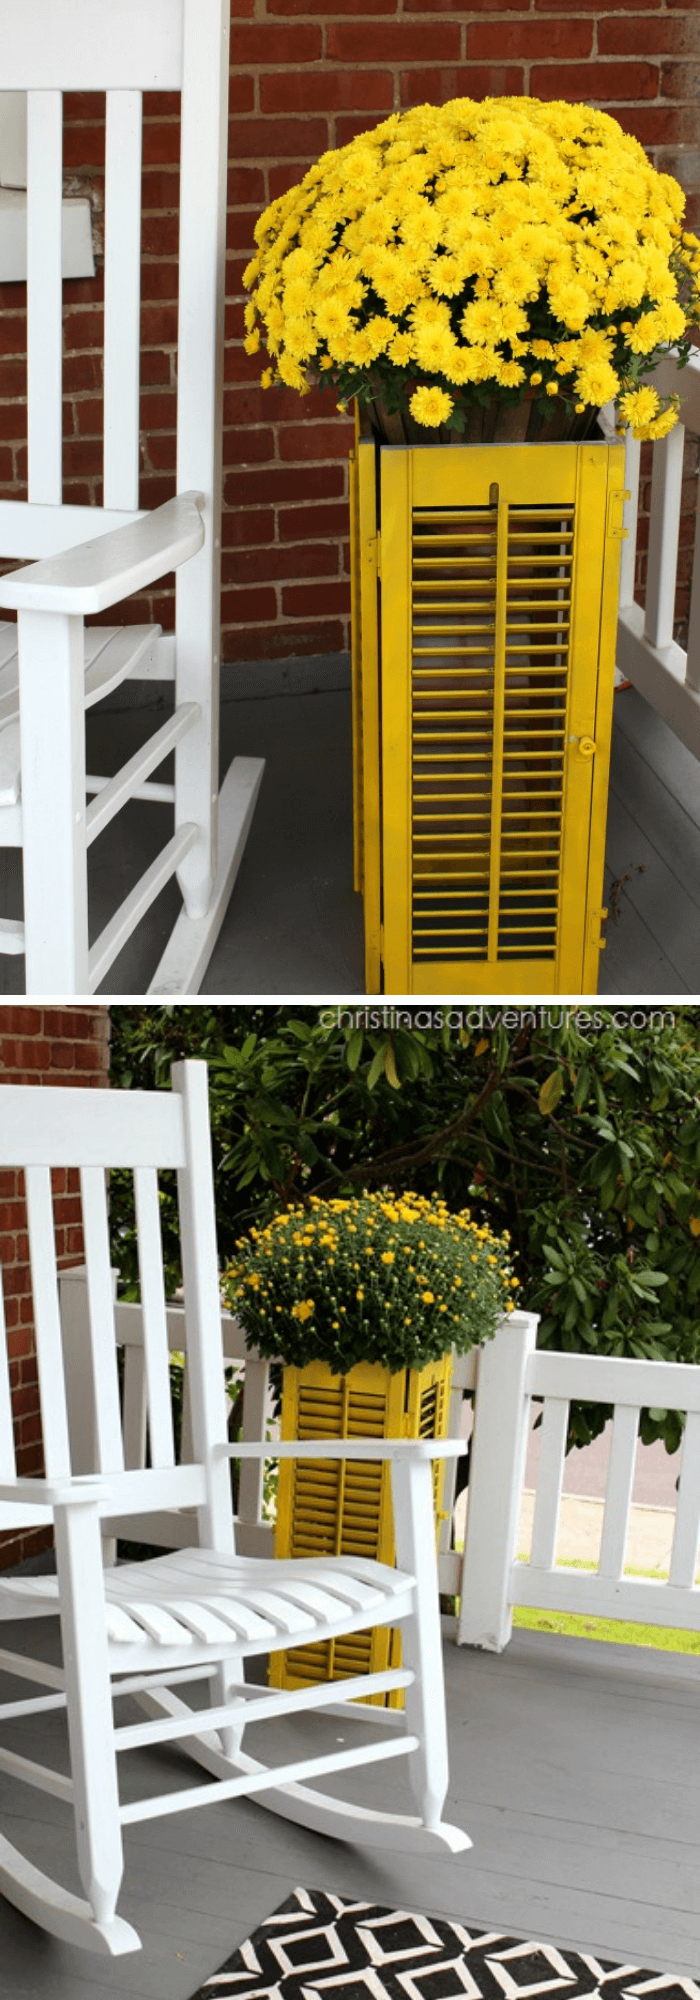 Old Shutter Outdoor Decor Ideas Yellow shutter planter for summer and fall porch